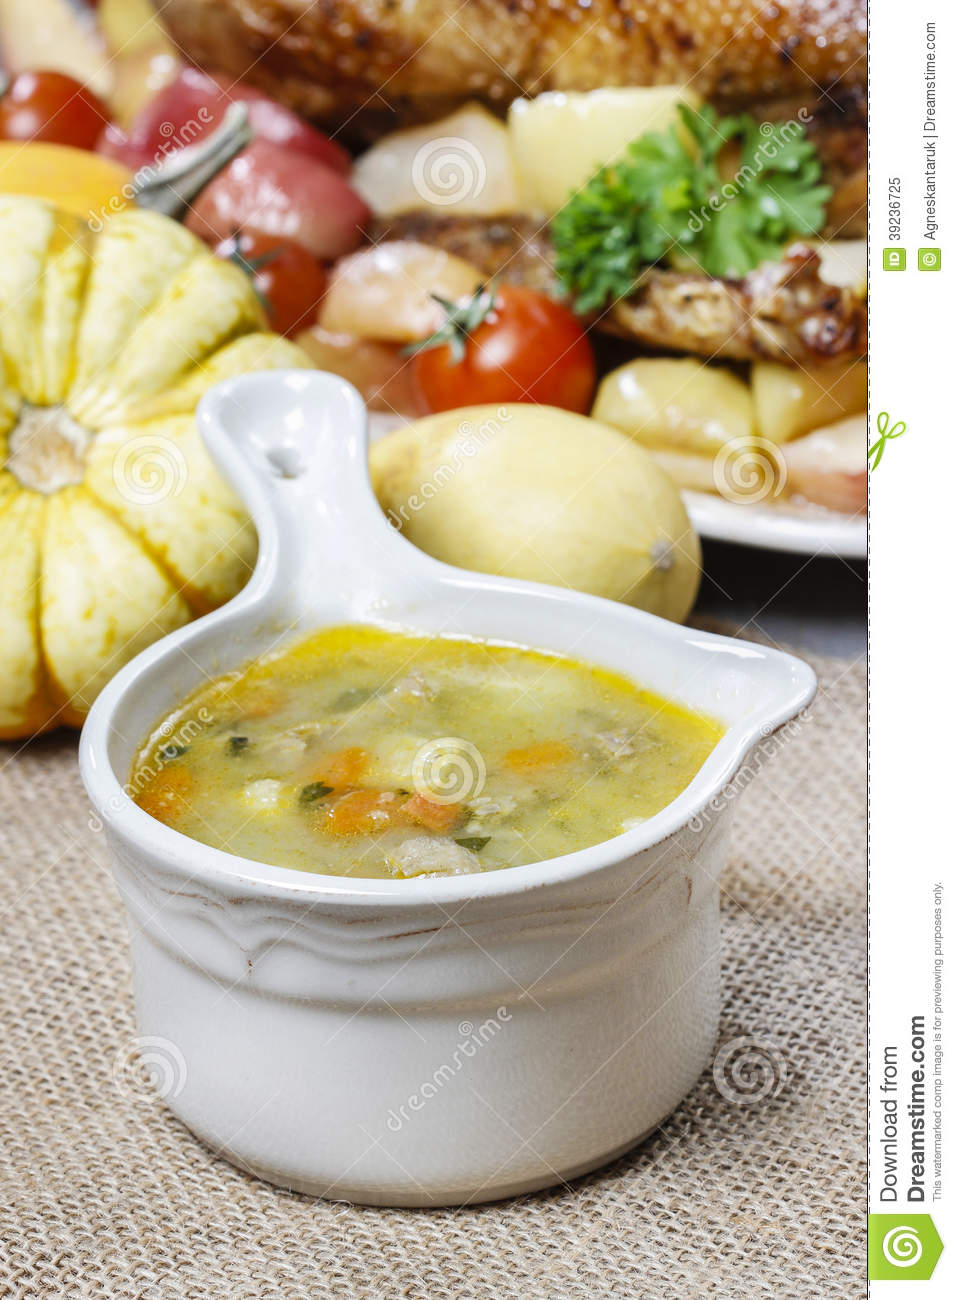 Chicken soup with noodle and vegetables stock photo for What vegetables to put in chicken noodle soup